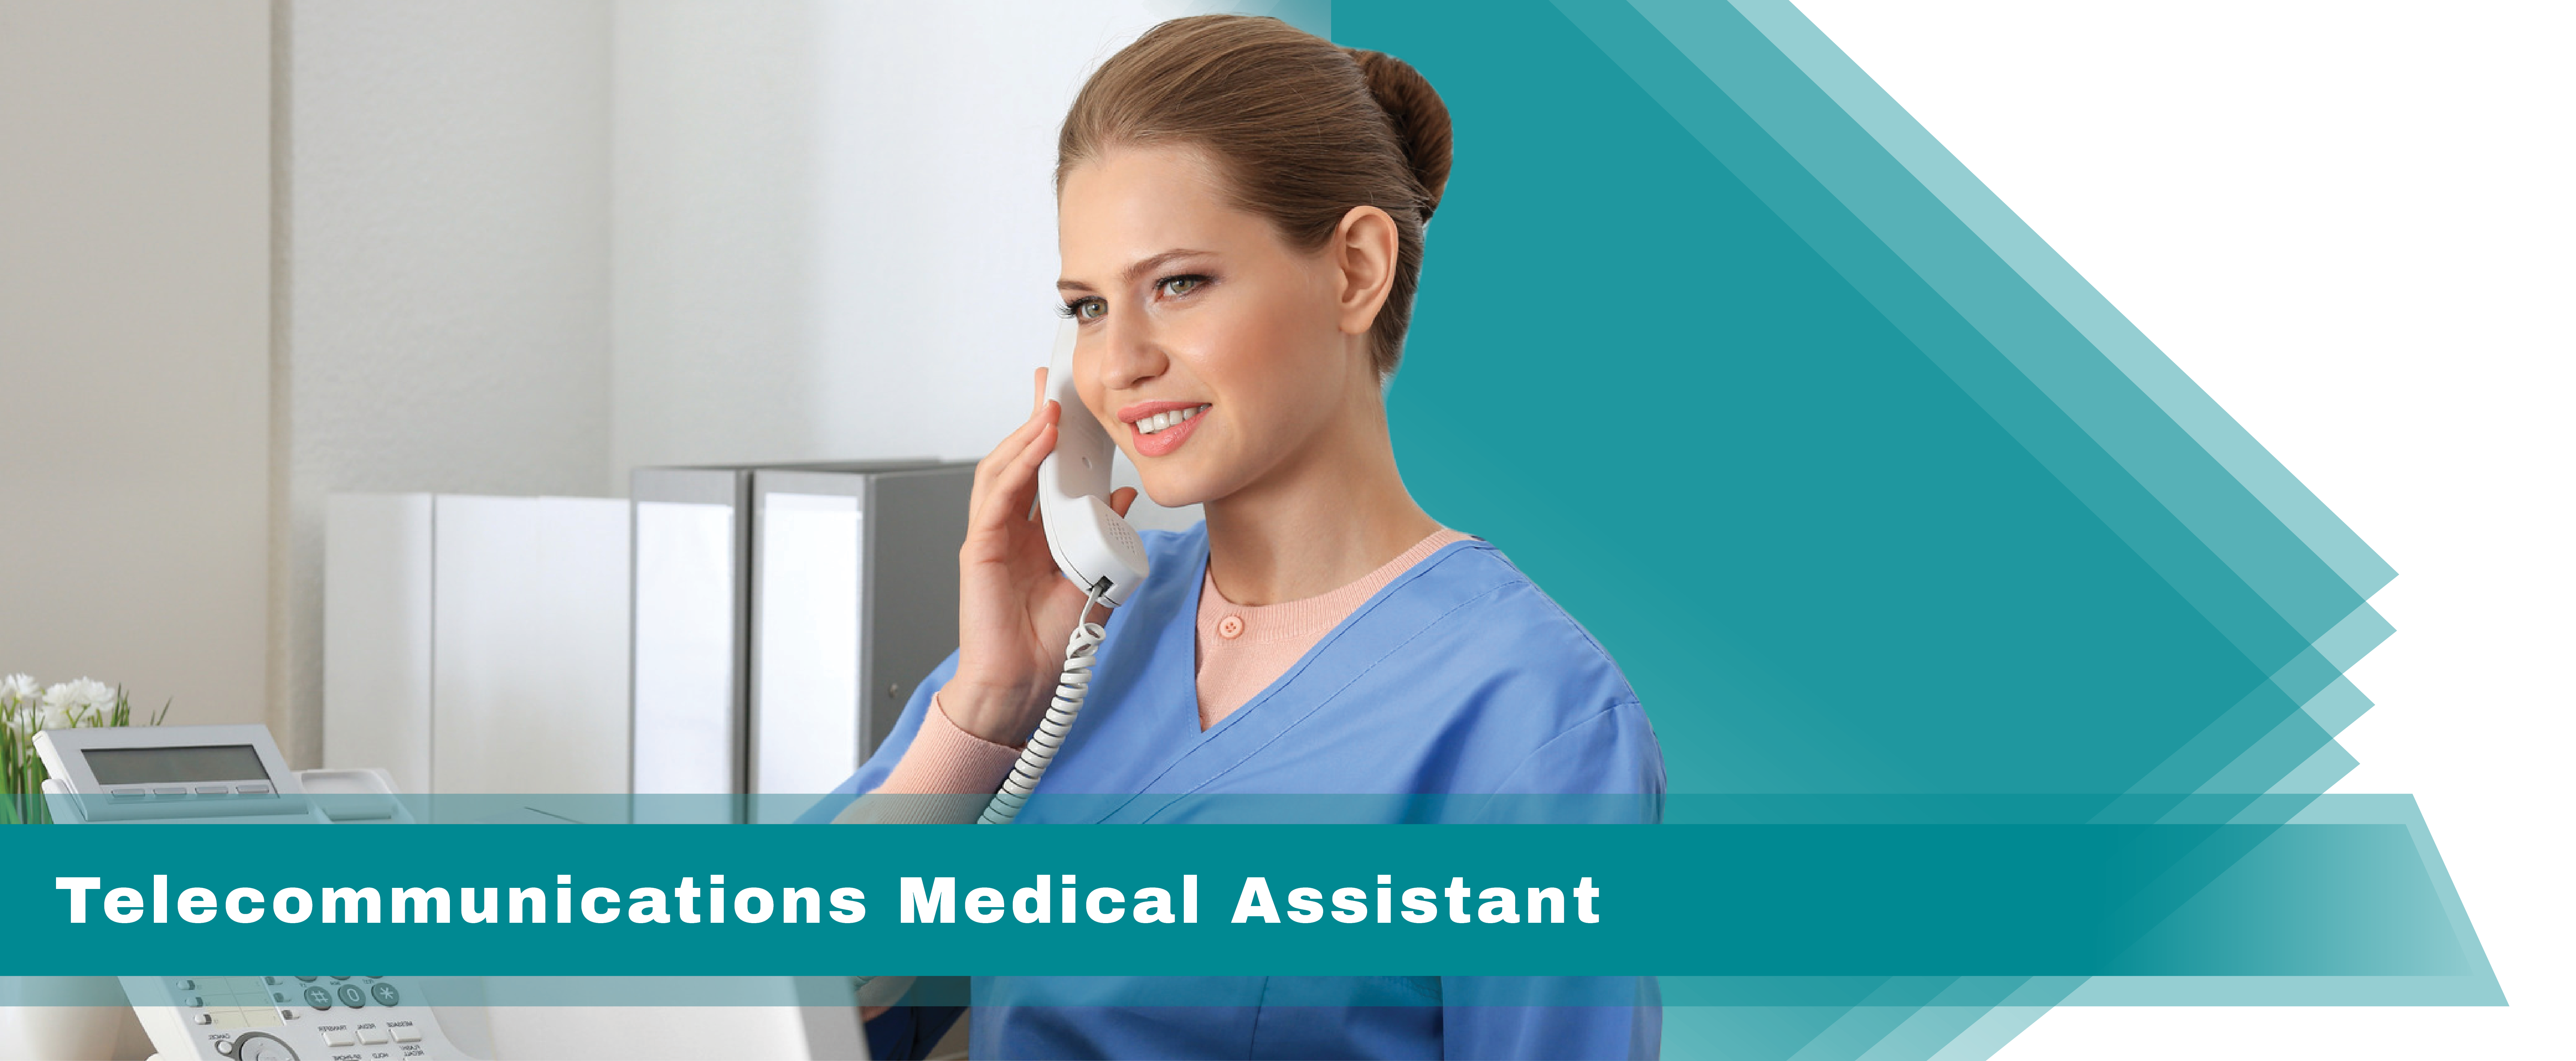 Telecommunications Medical Assistant